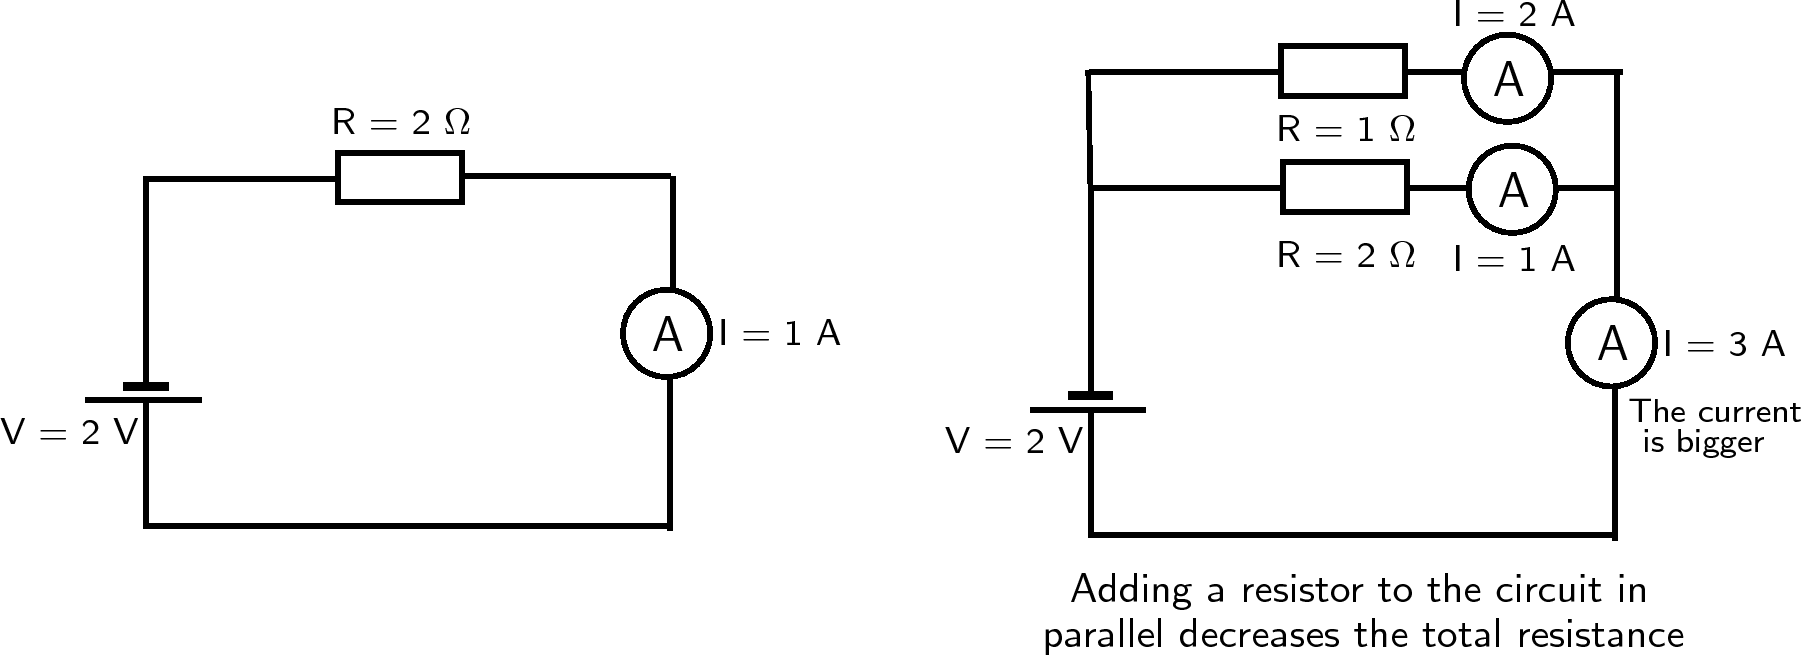 Electric Circuits Grade 10 CAPS